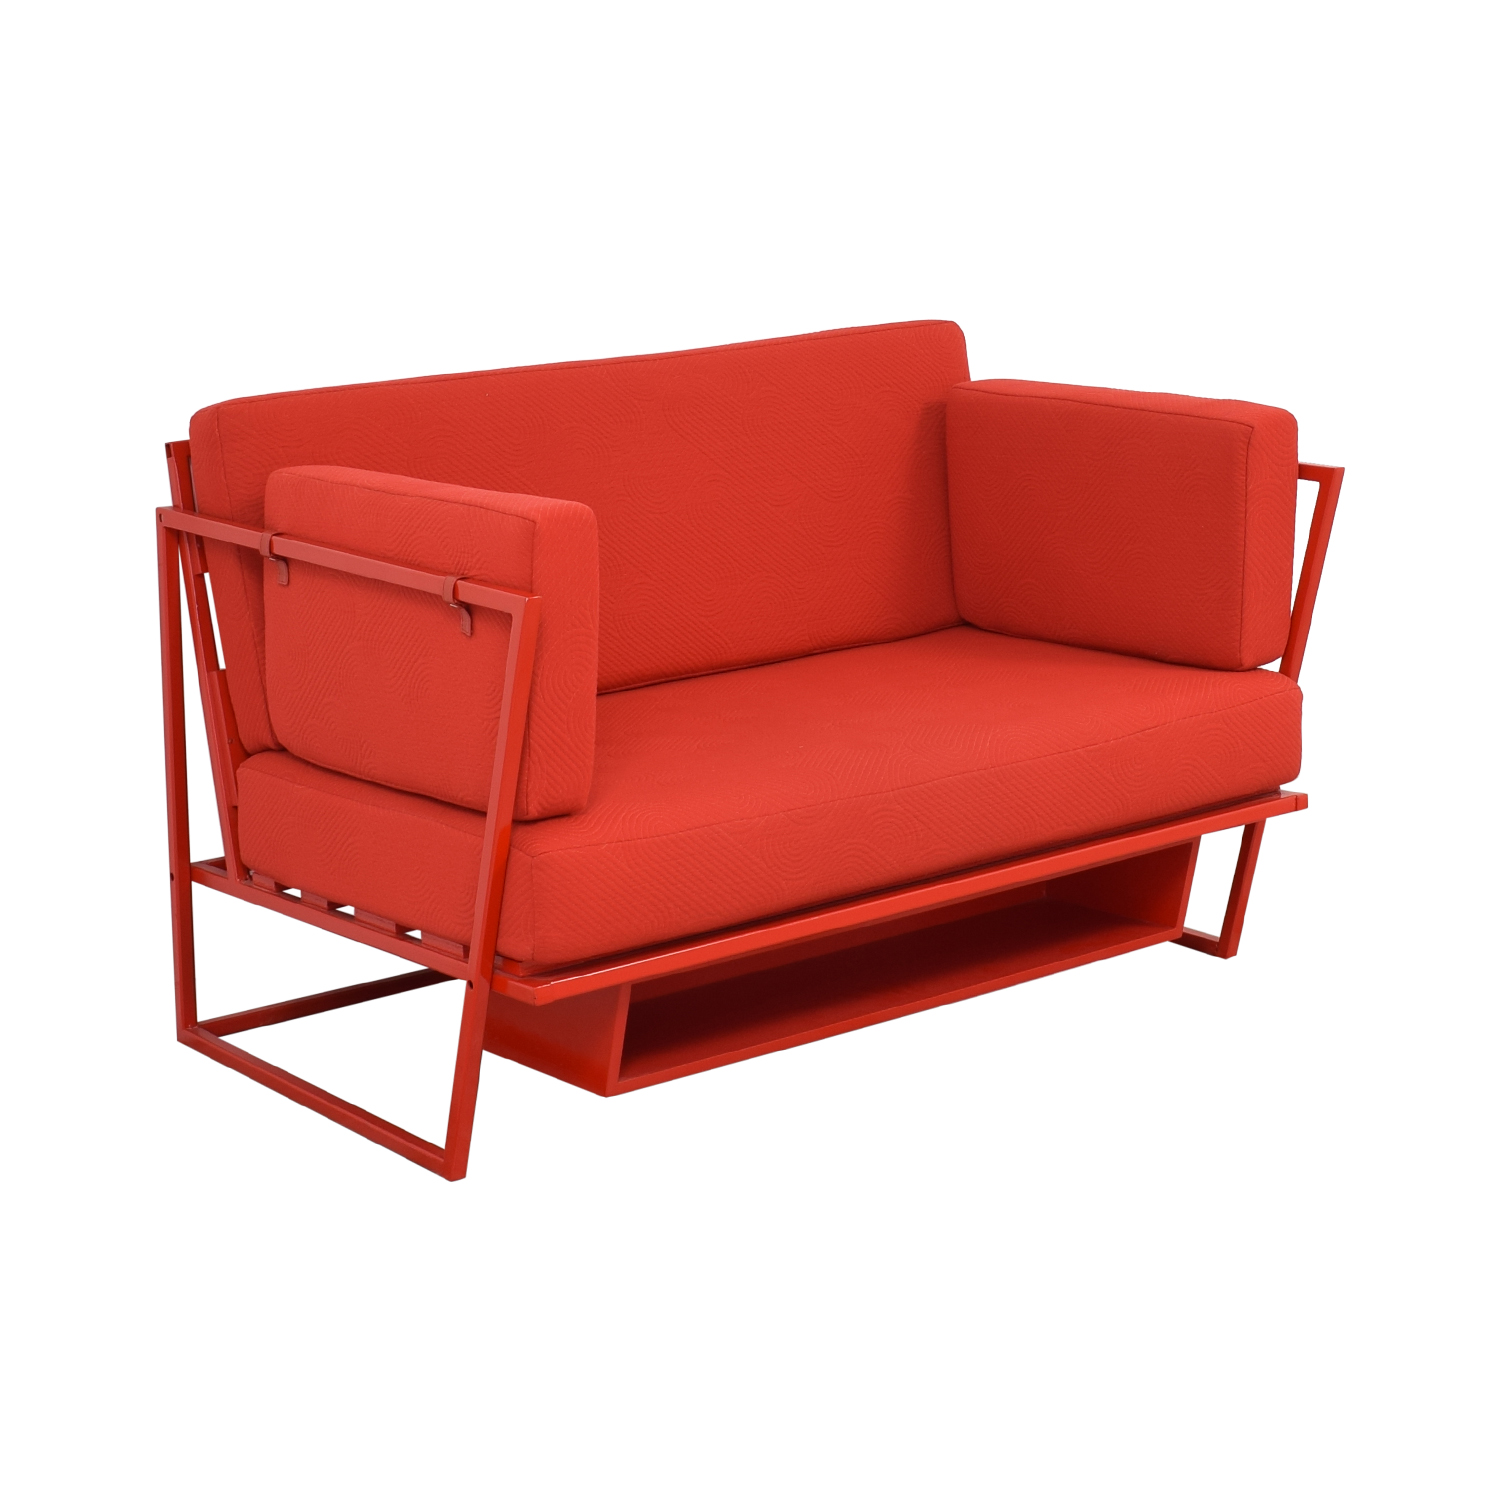 Collector NYC Custom Red Sofa Collector NYC